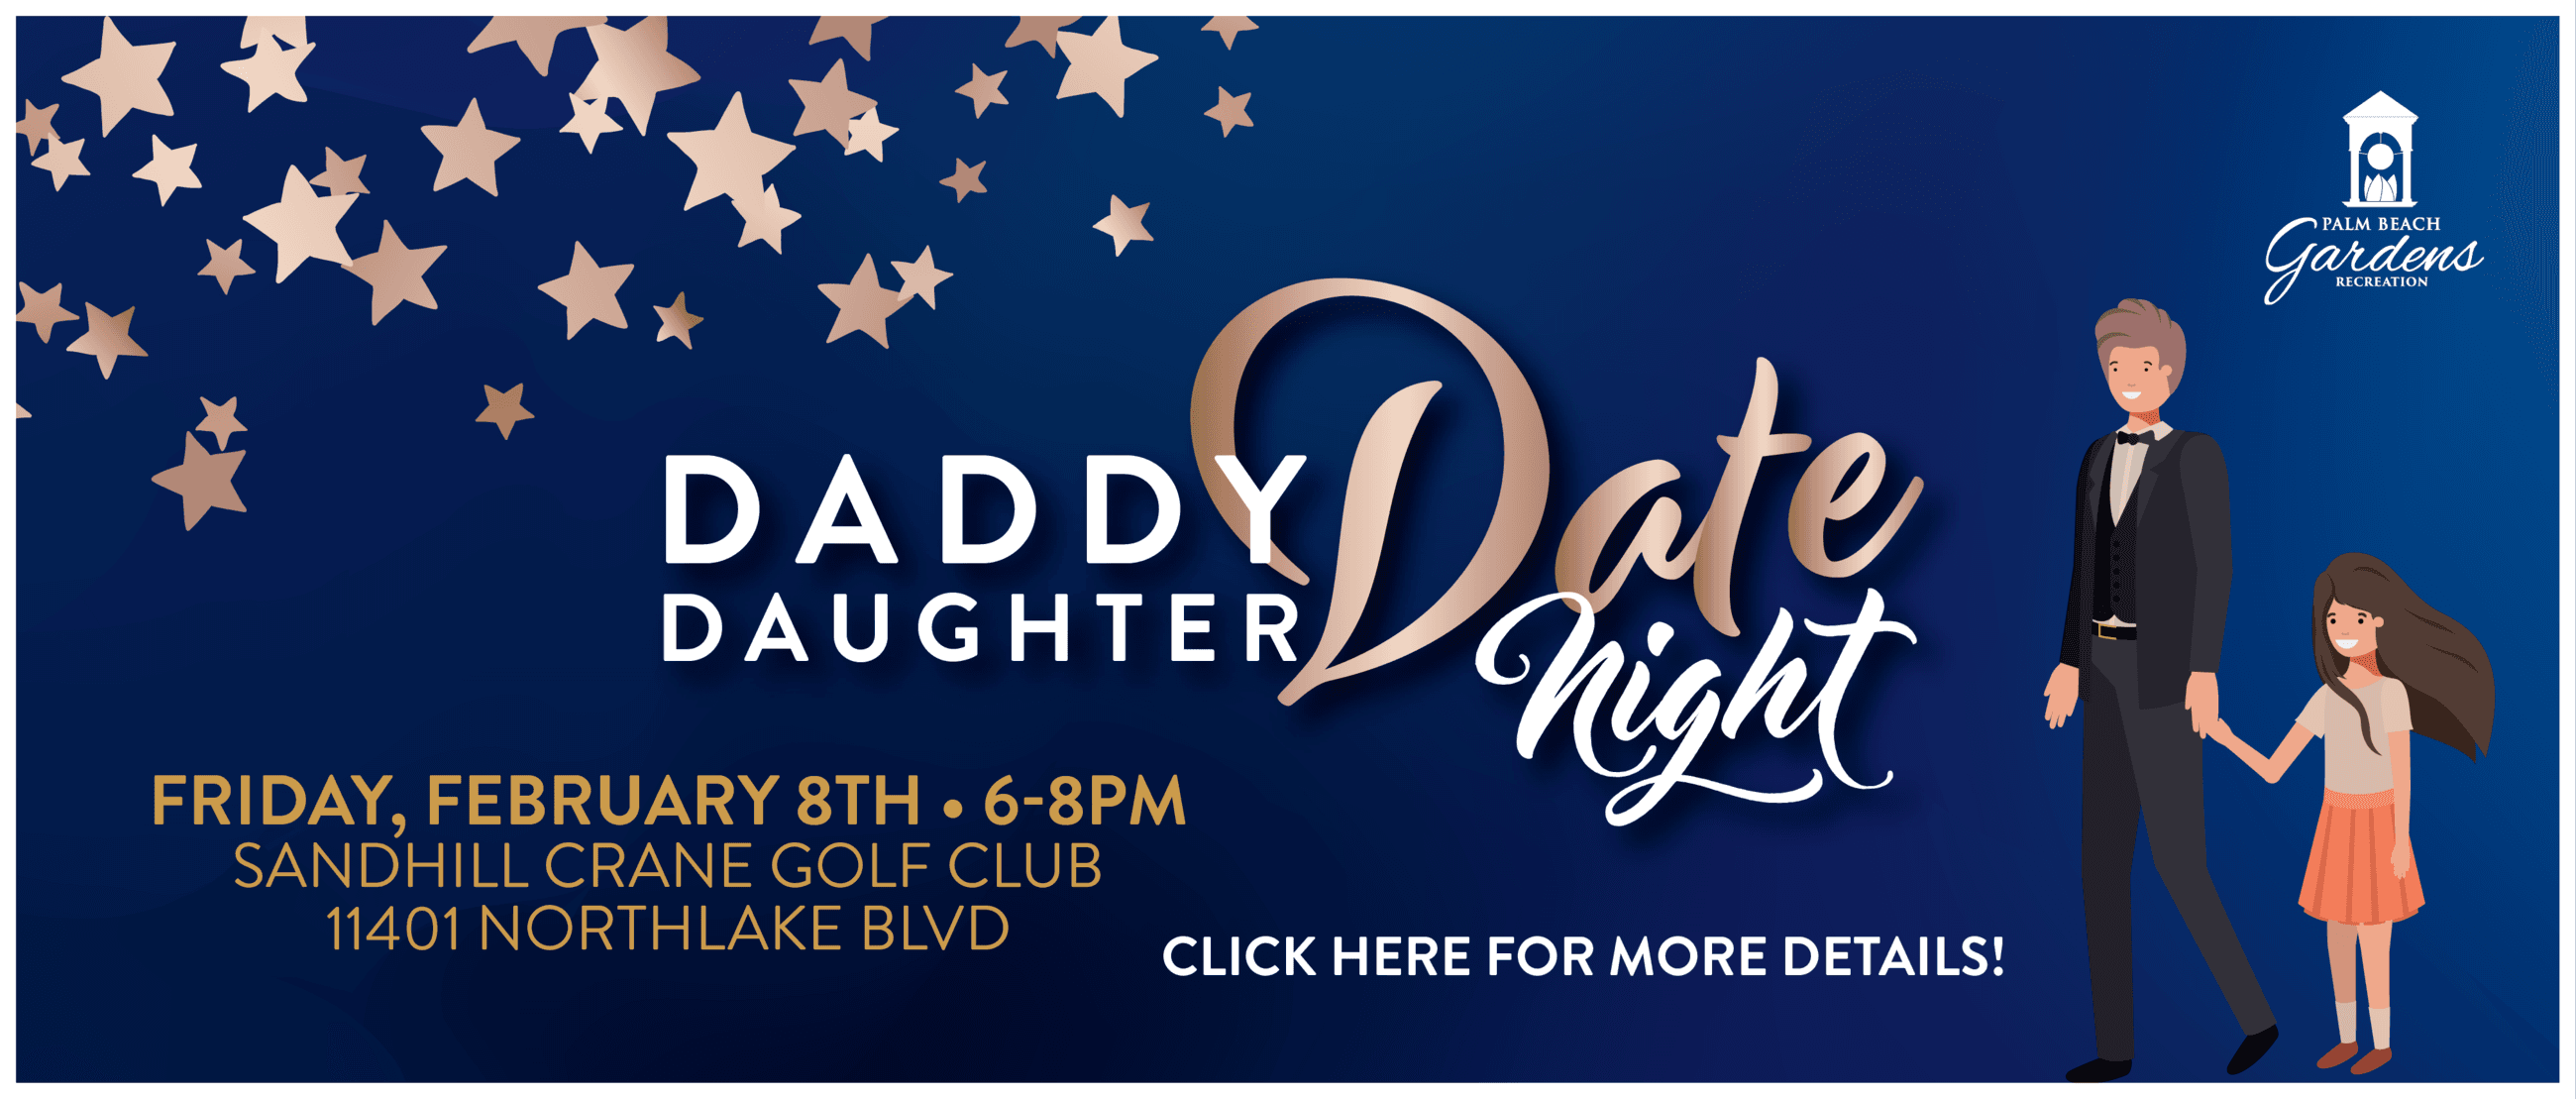 daddy daughter date night friday february 8 6-8pm 11401 northlake boulevard